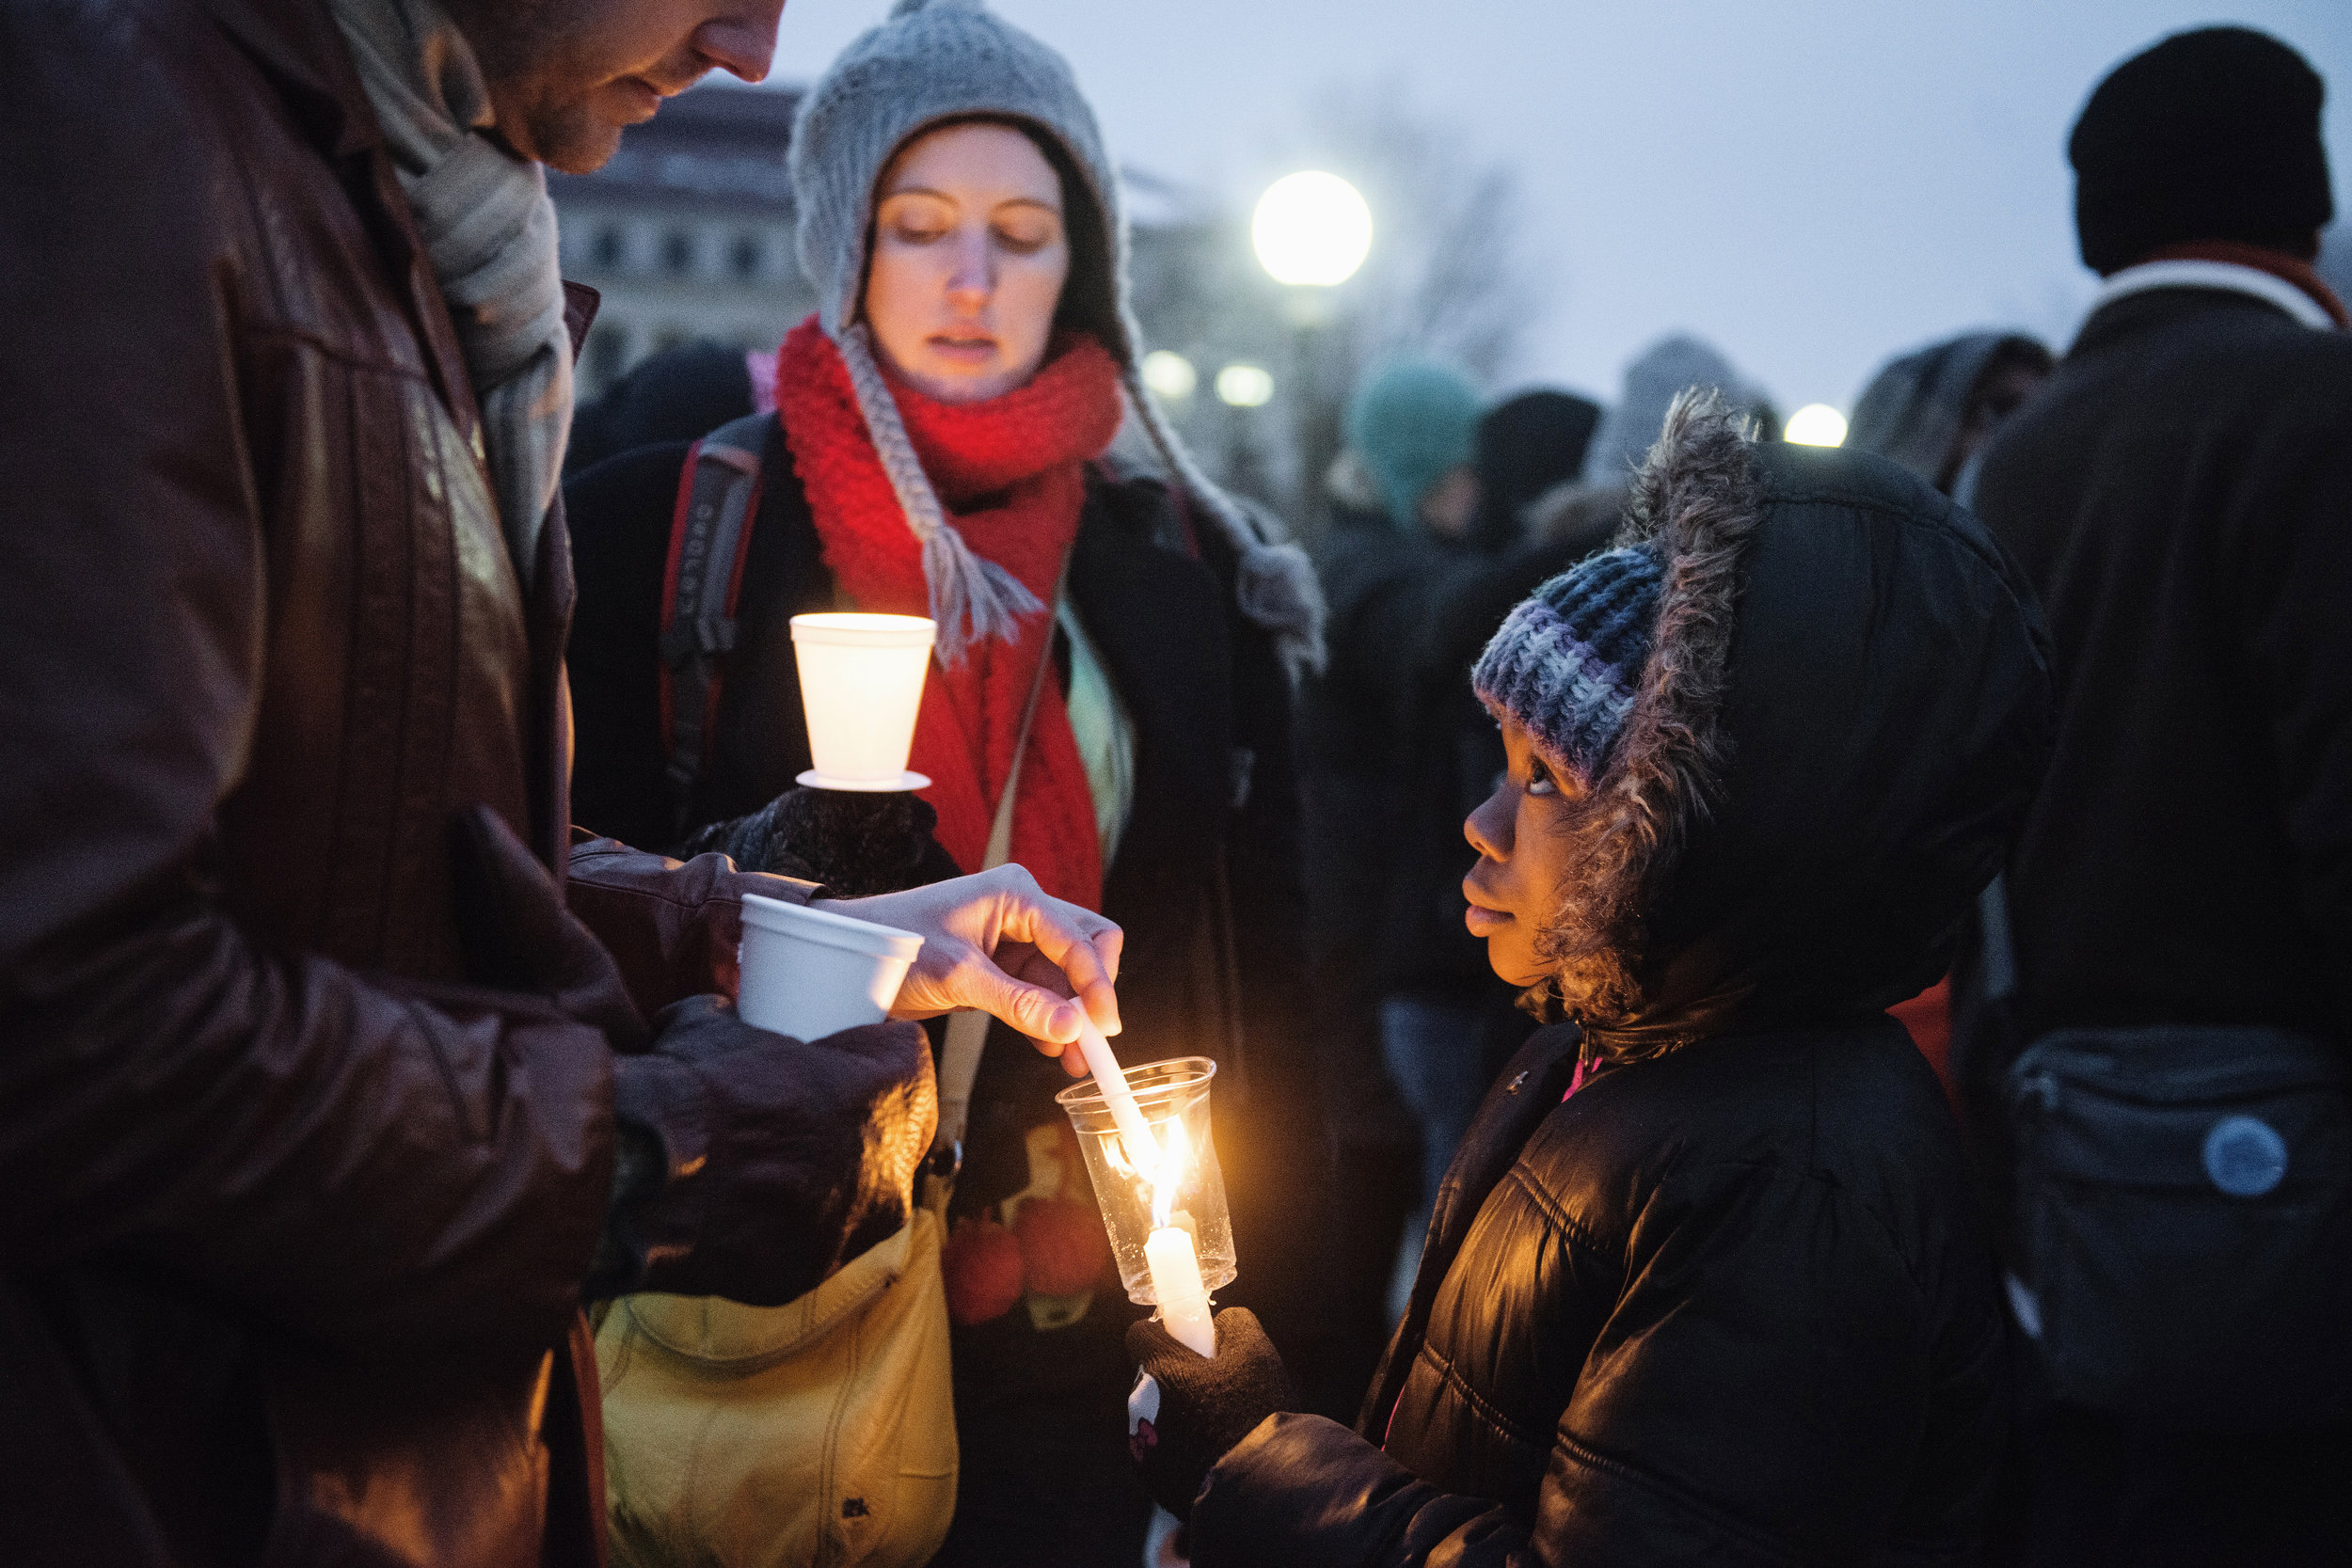 Khilanni Easterling helps ignite the candles of demonstrators in front of the Minnesota State Capitol on Martin Luther King Jr. Day, Jan. 19, 2015.